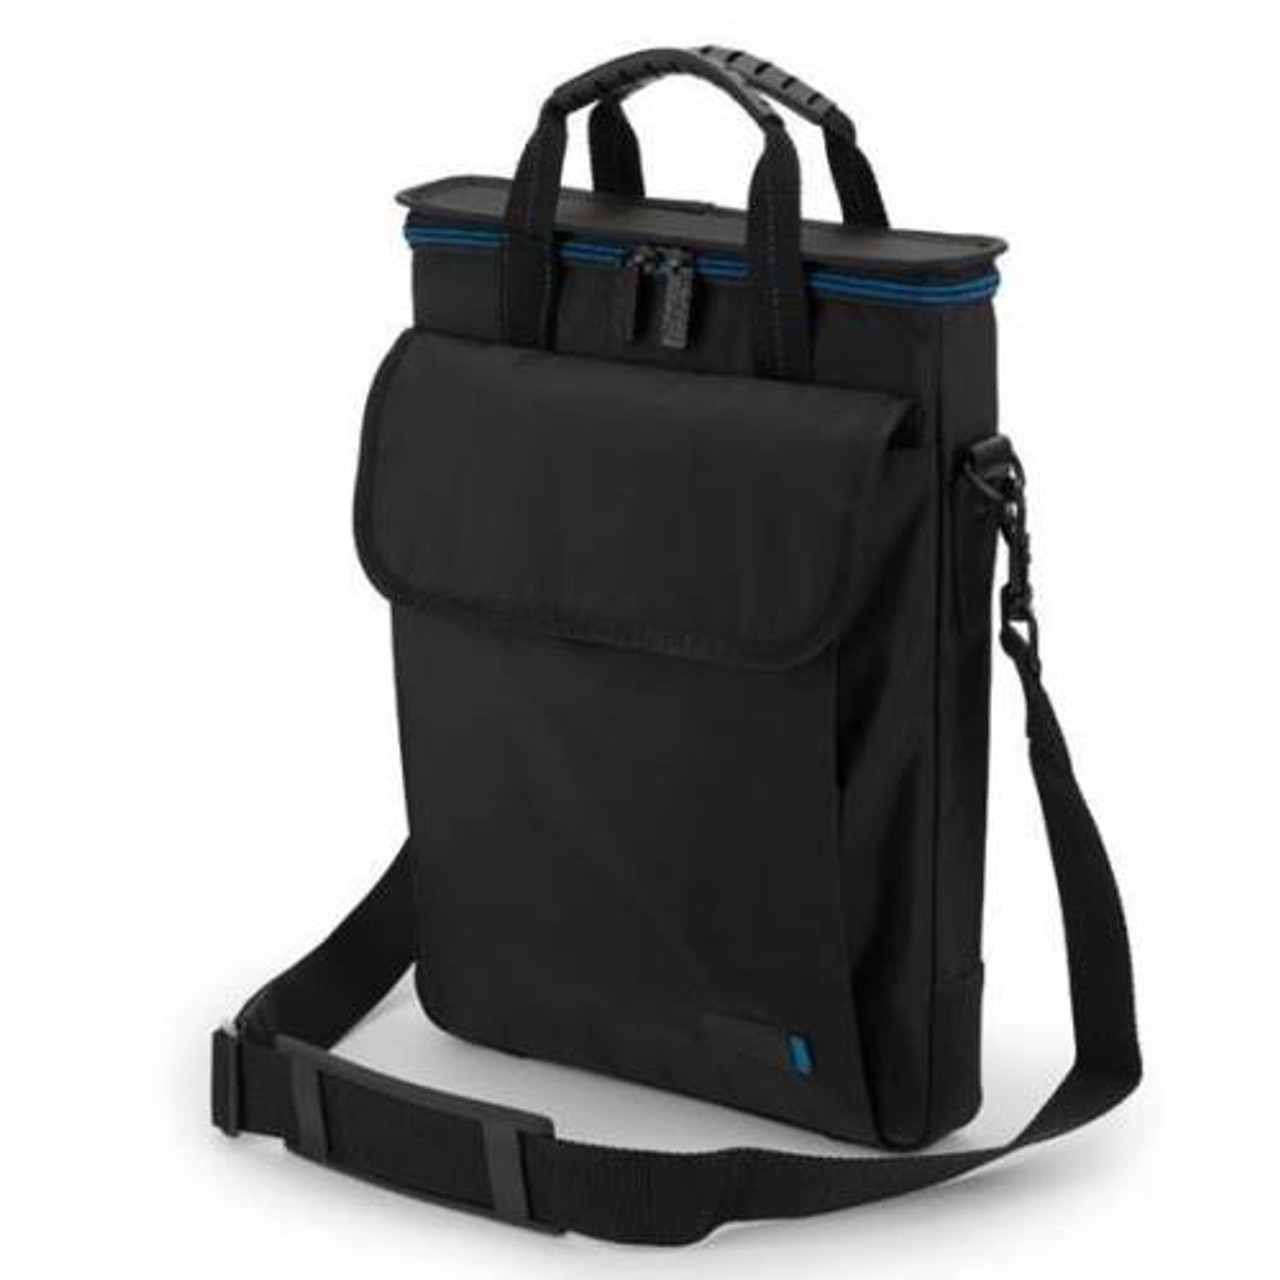 Image for Targus 11in-12in T.A.N.C. 5.0 Carrying Case CX Computer Superstore